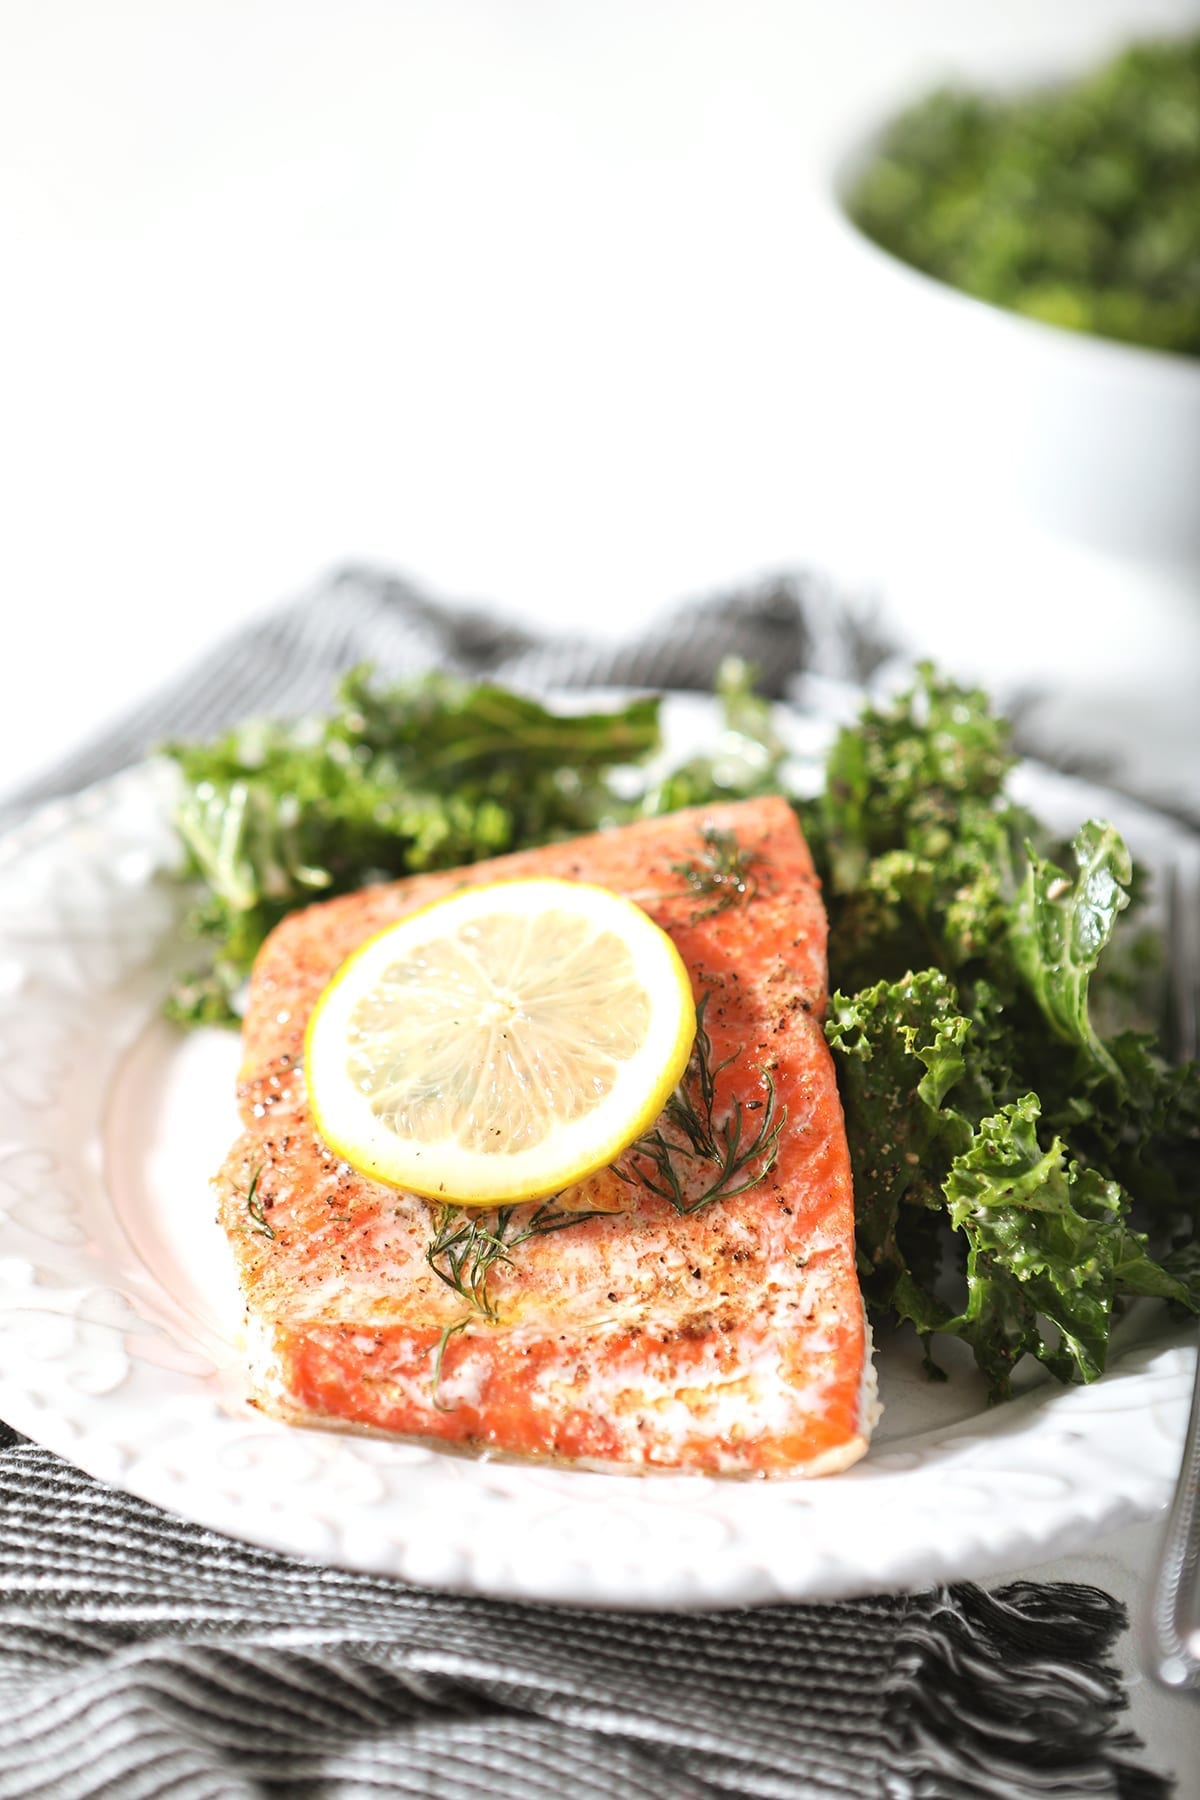 A baked salmon filet garnished with a lemon round and served with a kale salad on a white plate